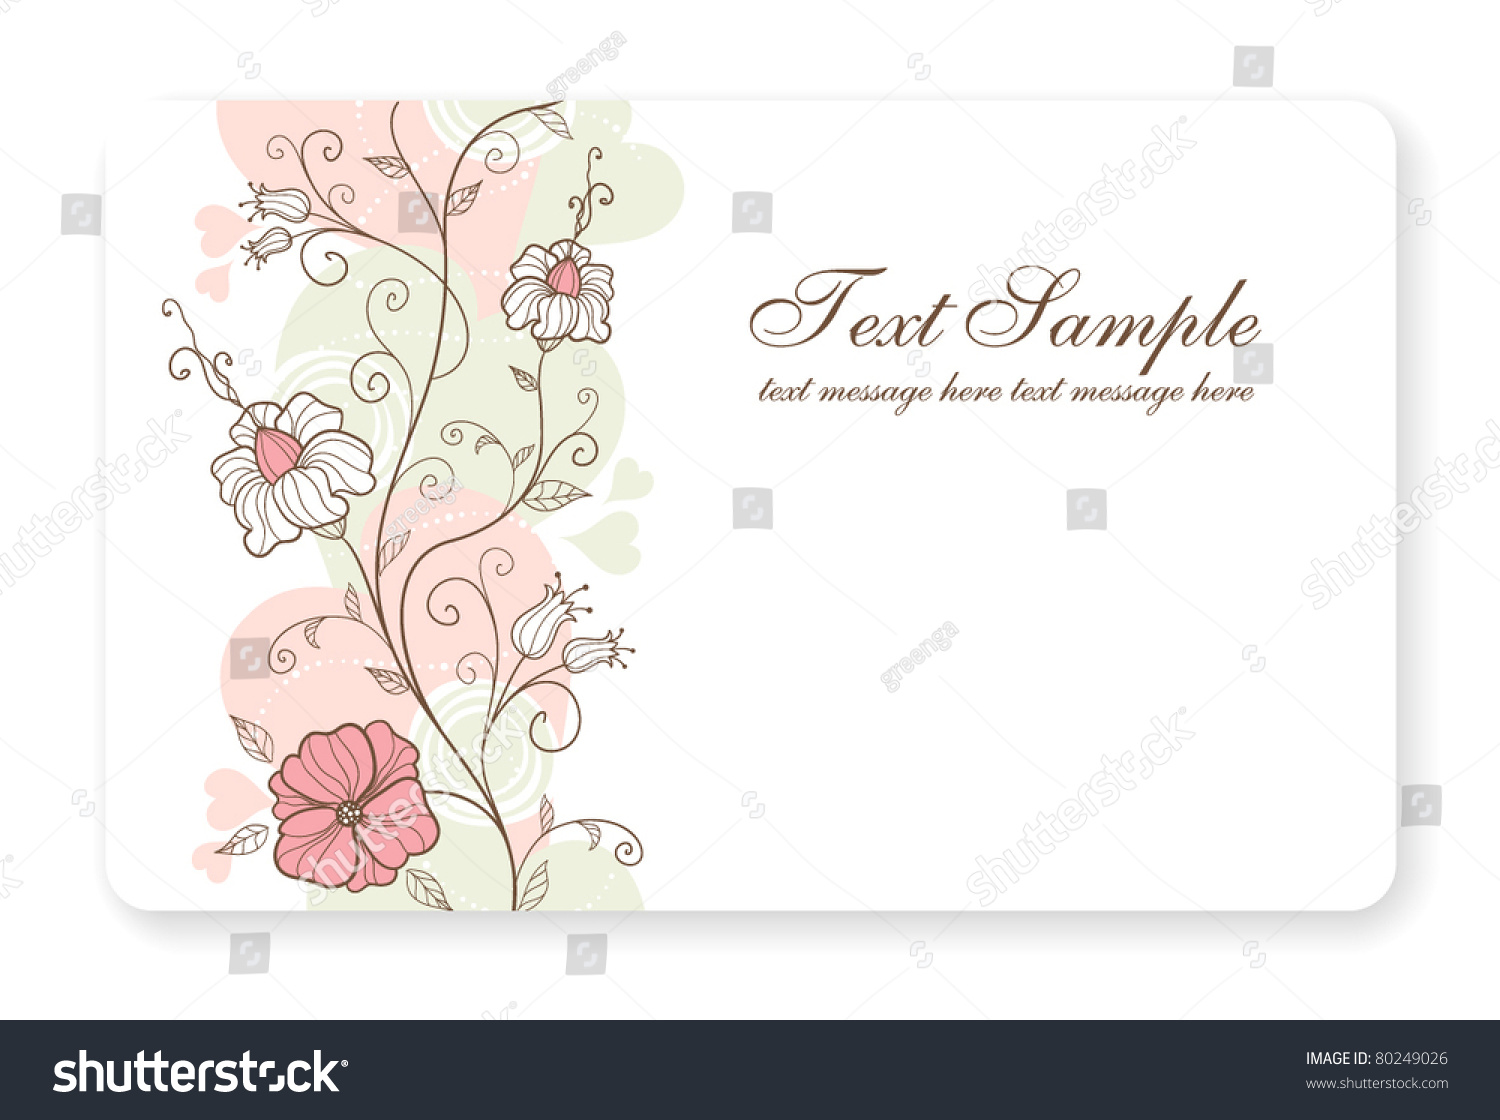 Credit Card Business Card Background Design Stock Vector 80249026 ...